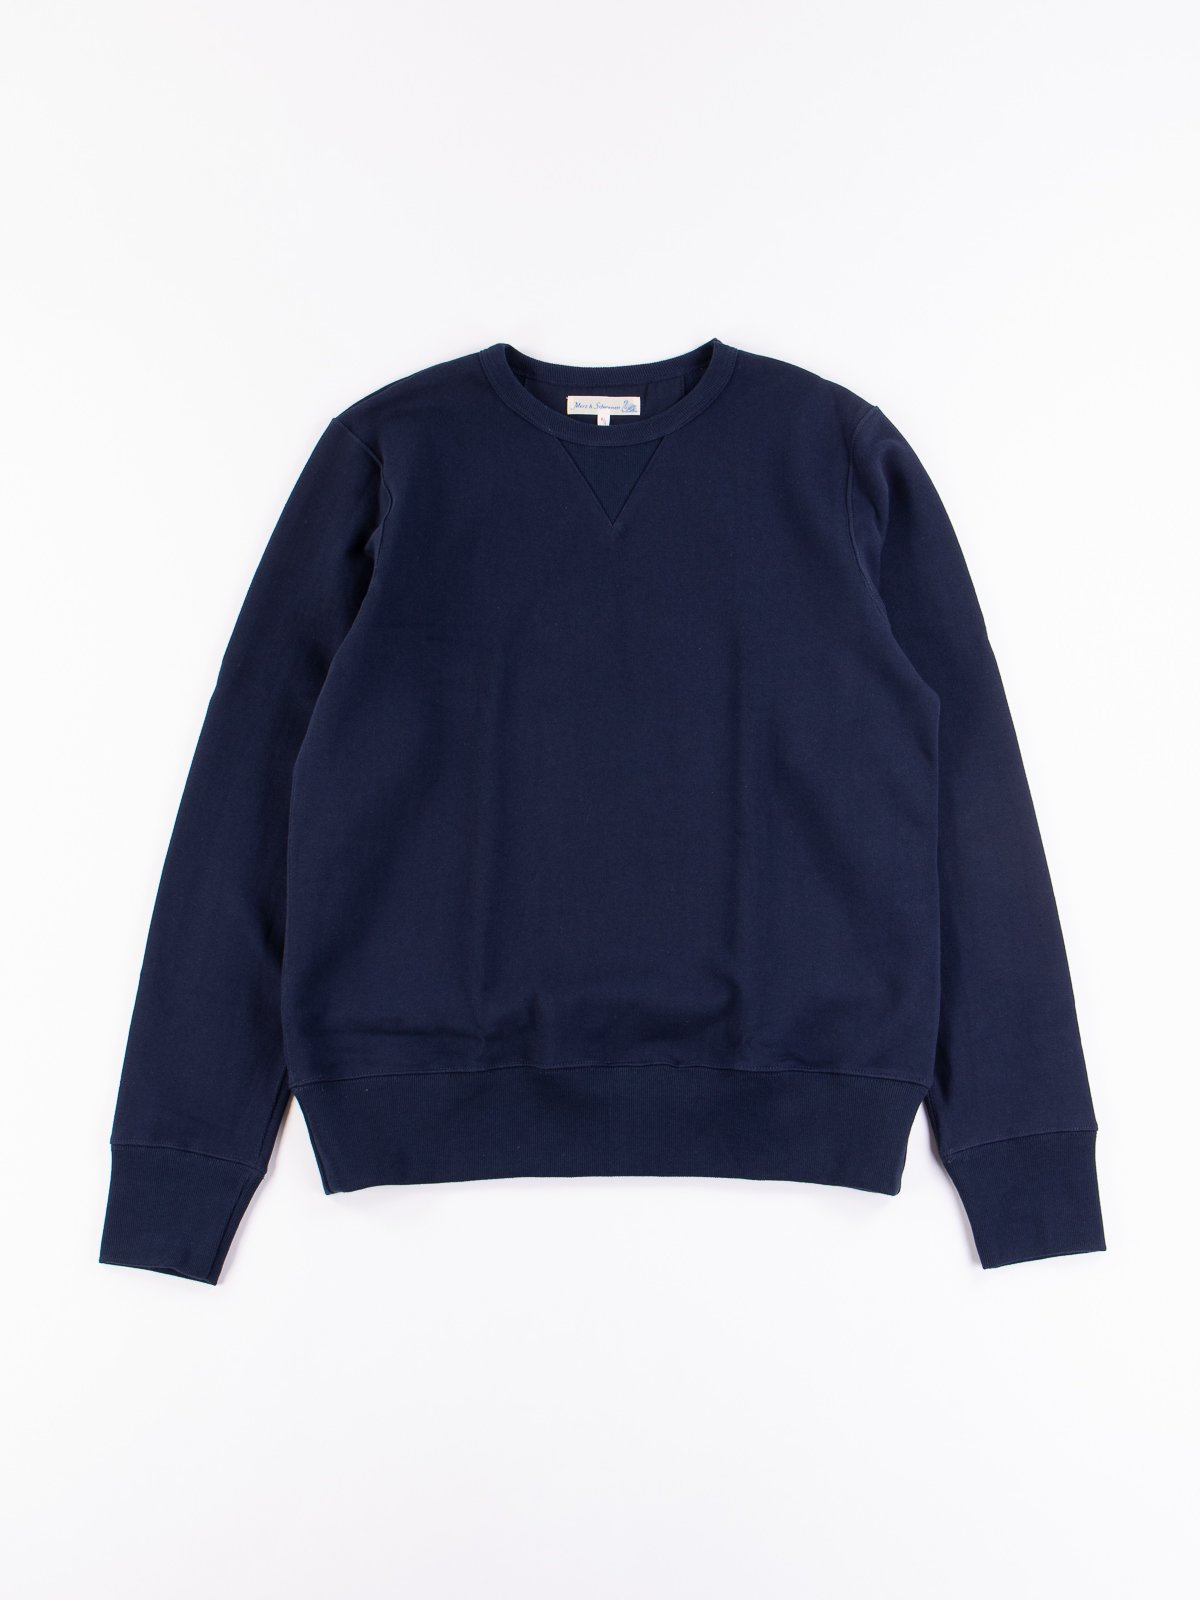 Ink Blue 3S48 Organic Cotton Heavy Sweater - Image 1